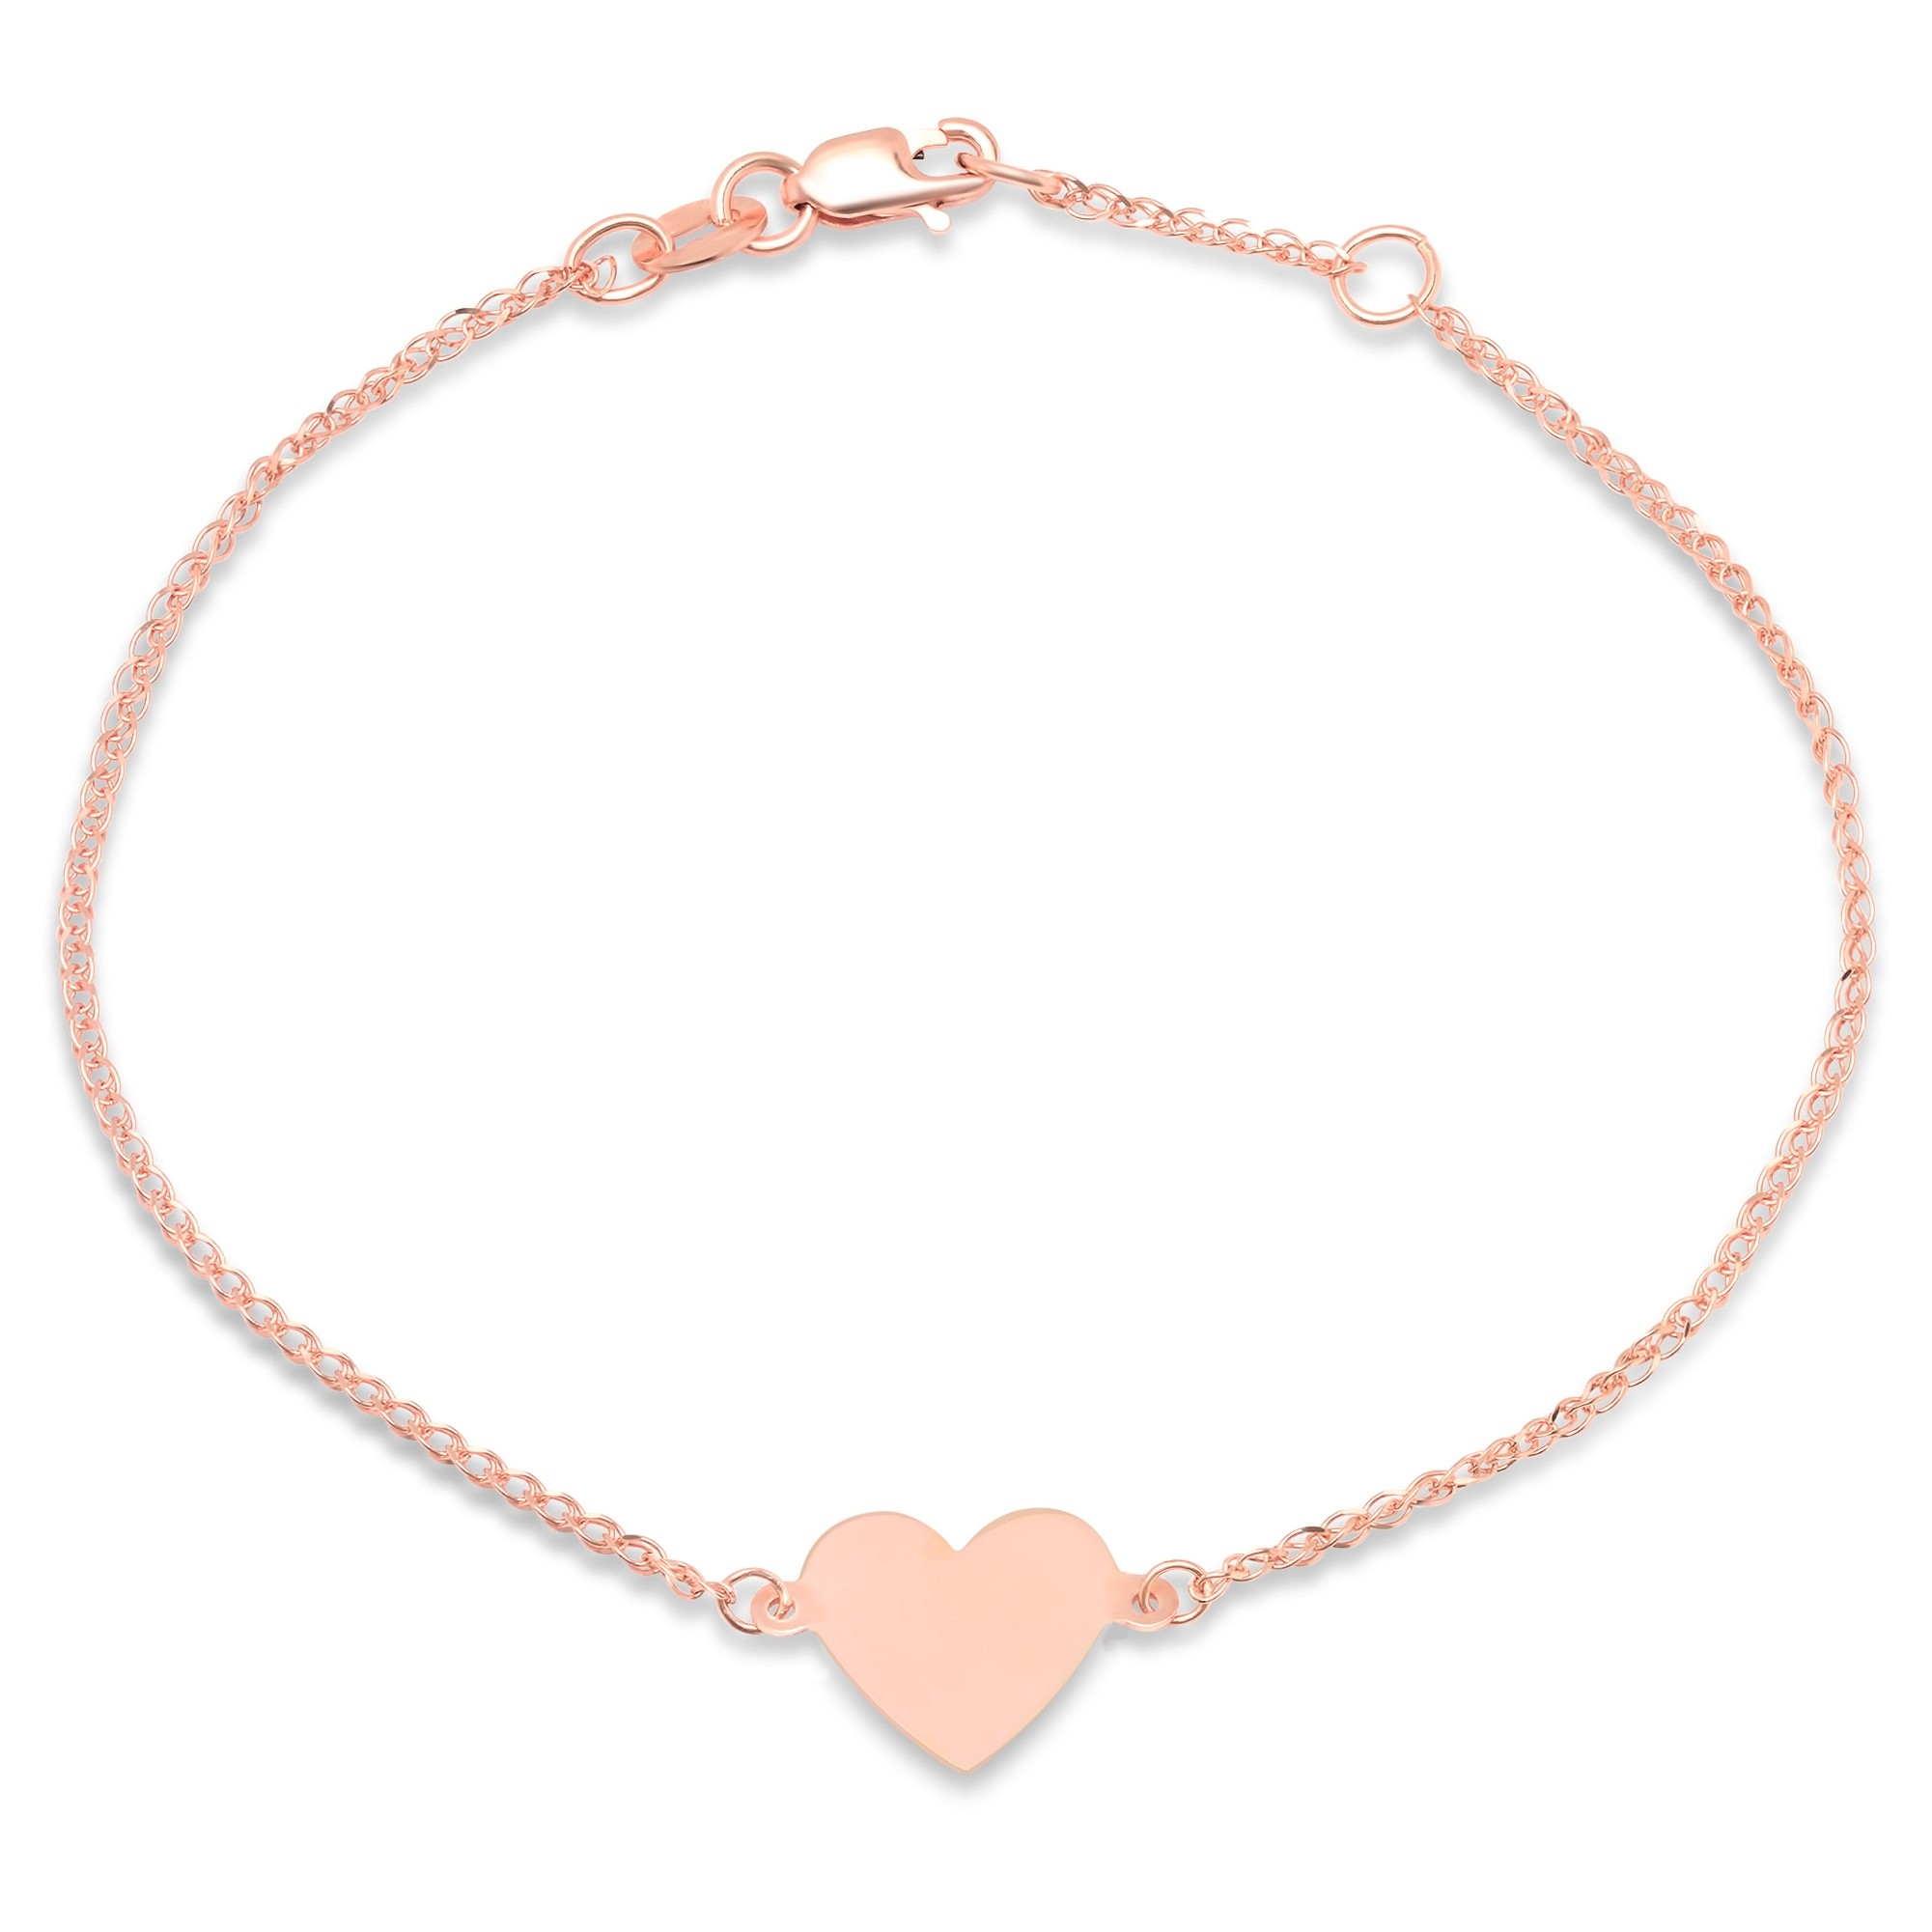 14k Rose Gold Floating Heart Bracelet